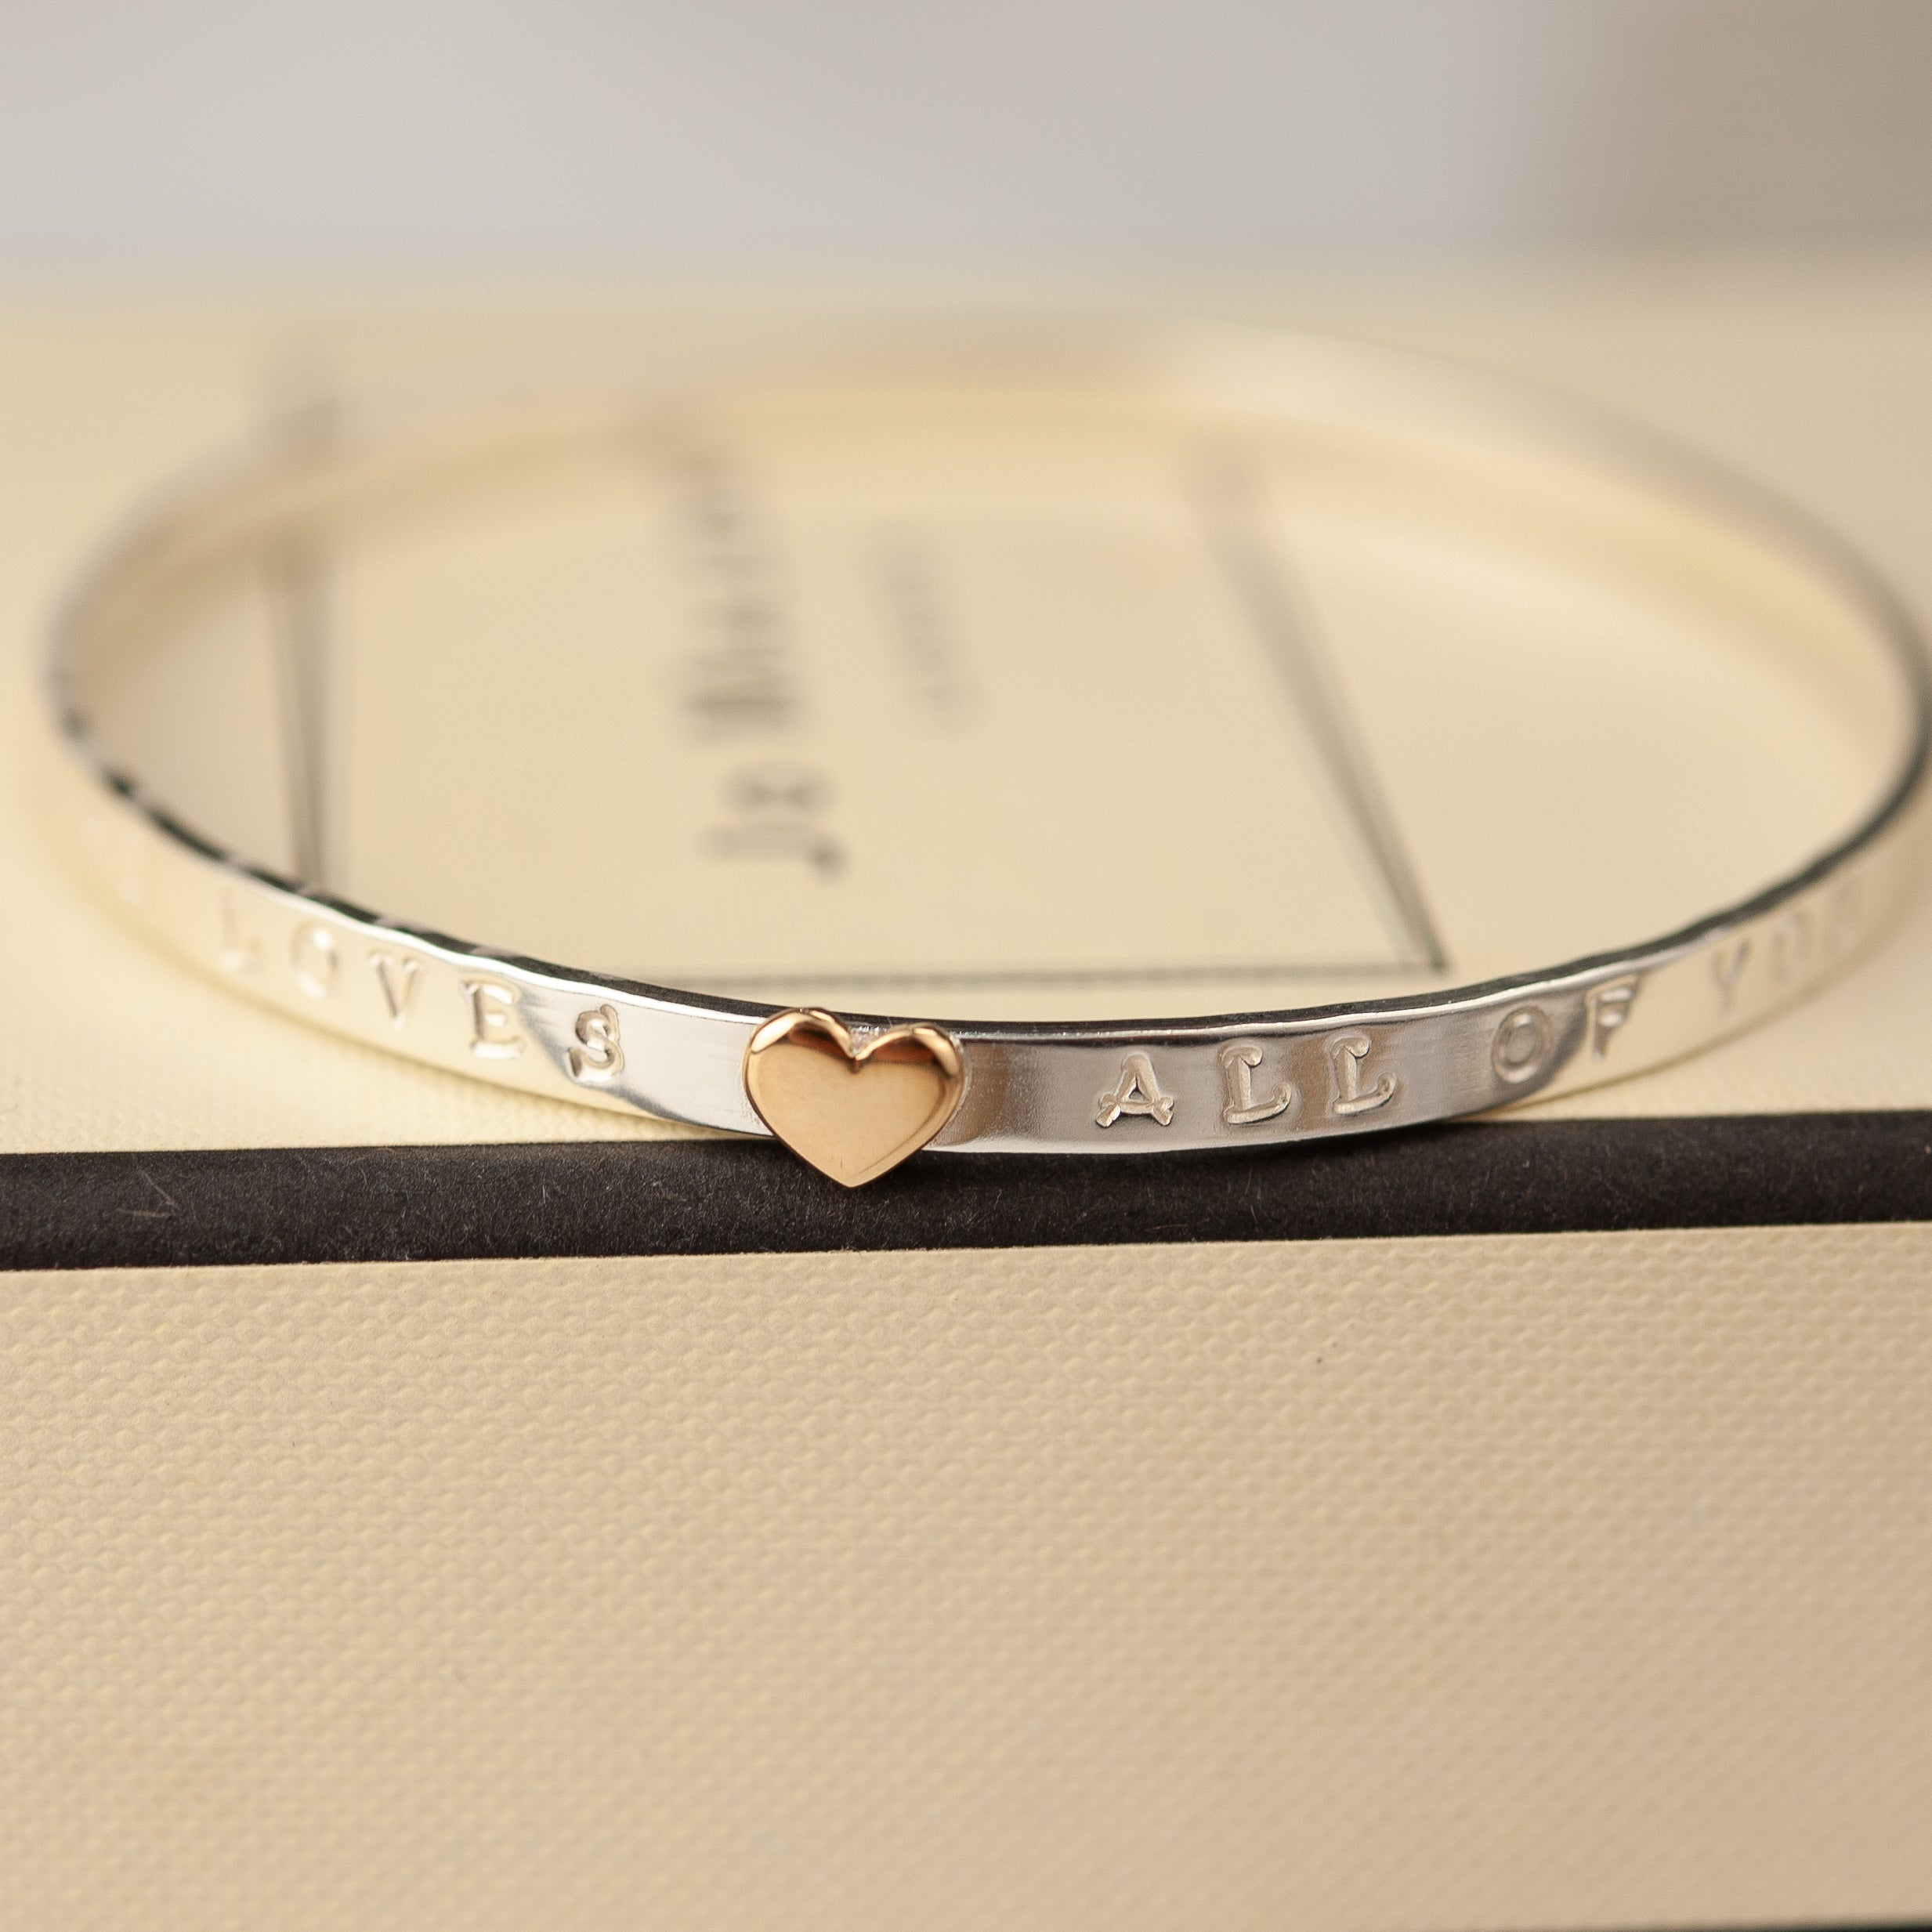 Belle & Bee Message bangle gold heart